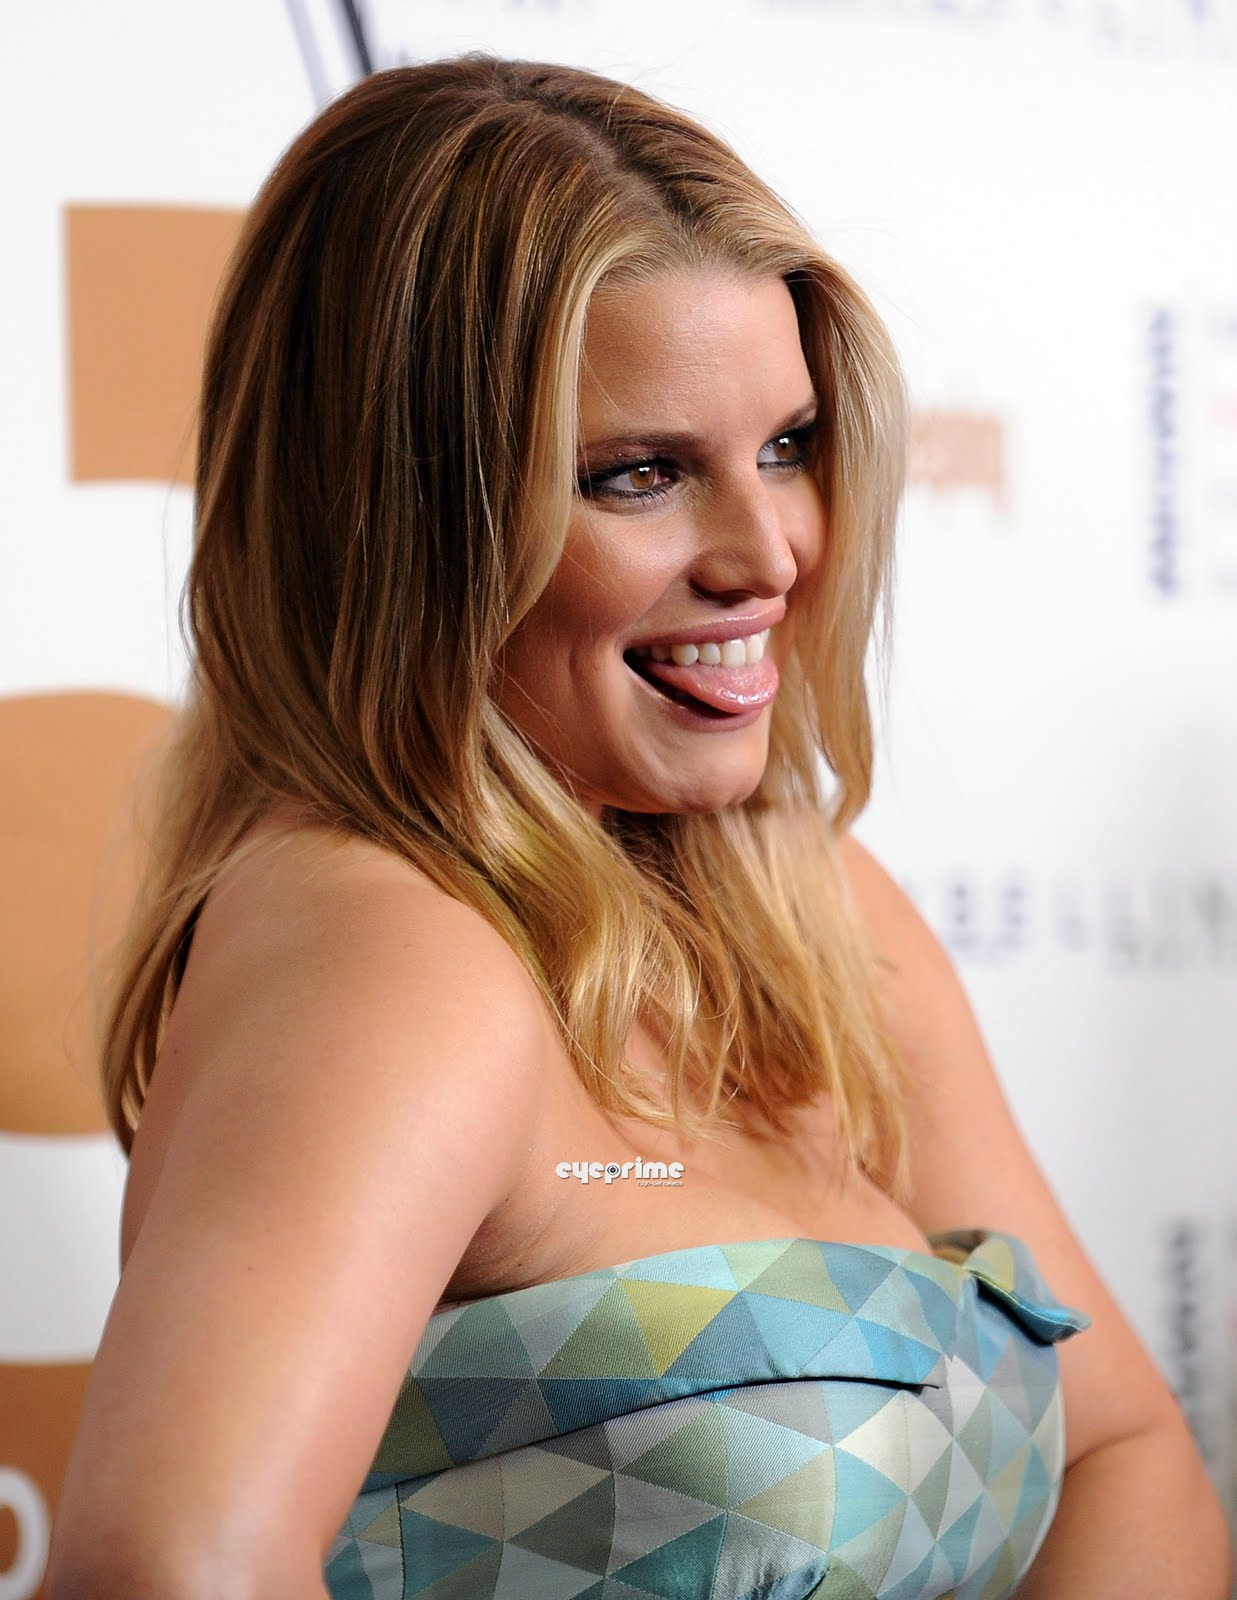 Wallpaper World: Jessica Simpson is Sexy Ledy and Beautiful Actress in Hollywood